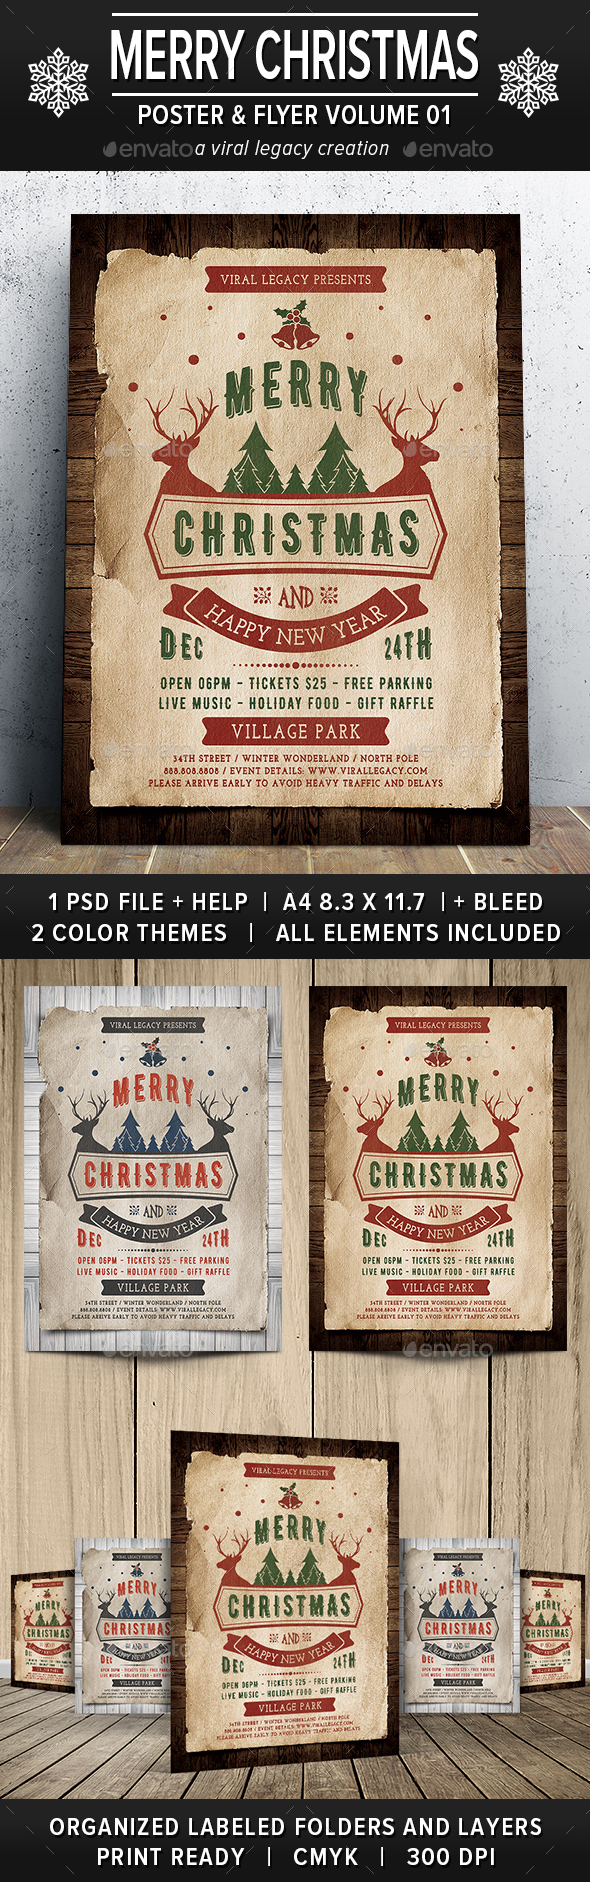 Merry Christmas Poster / Flyer V01 - Events Flyers